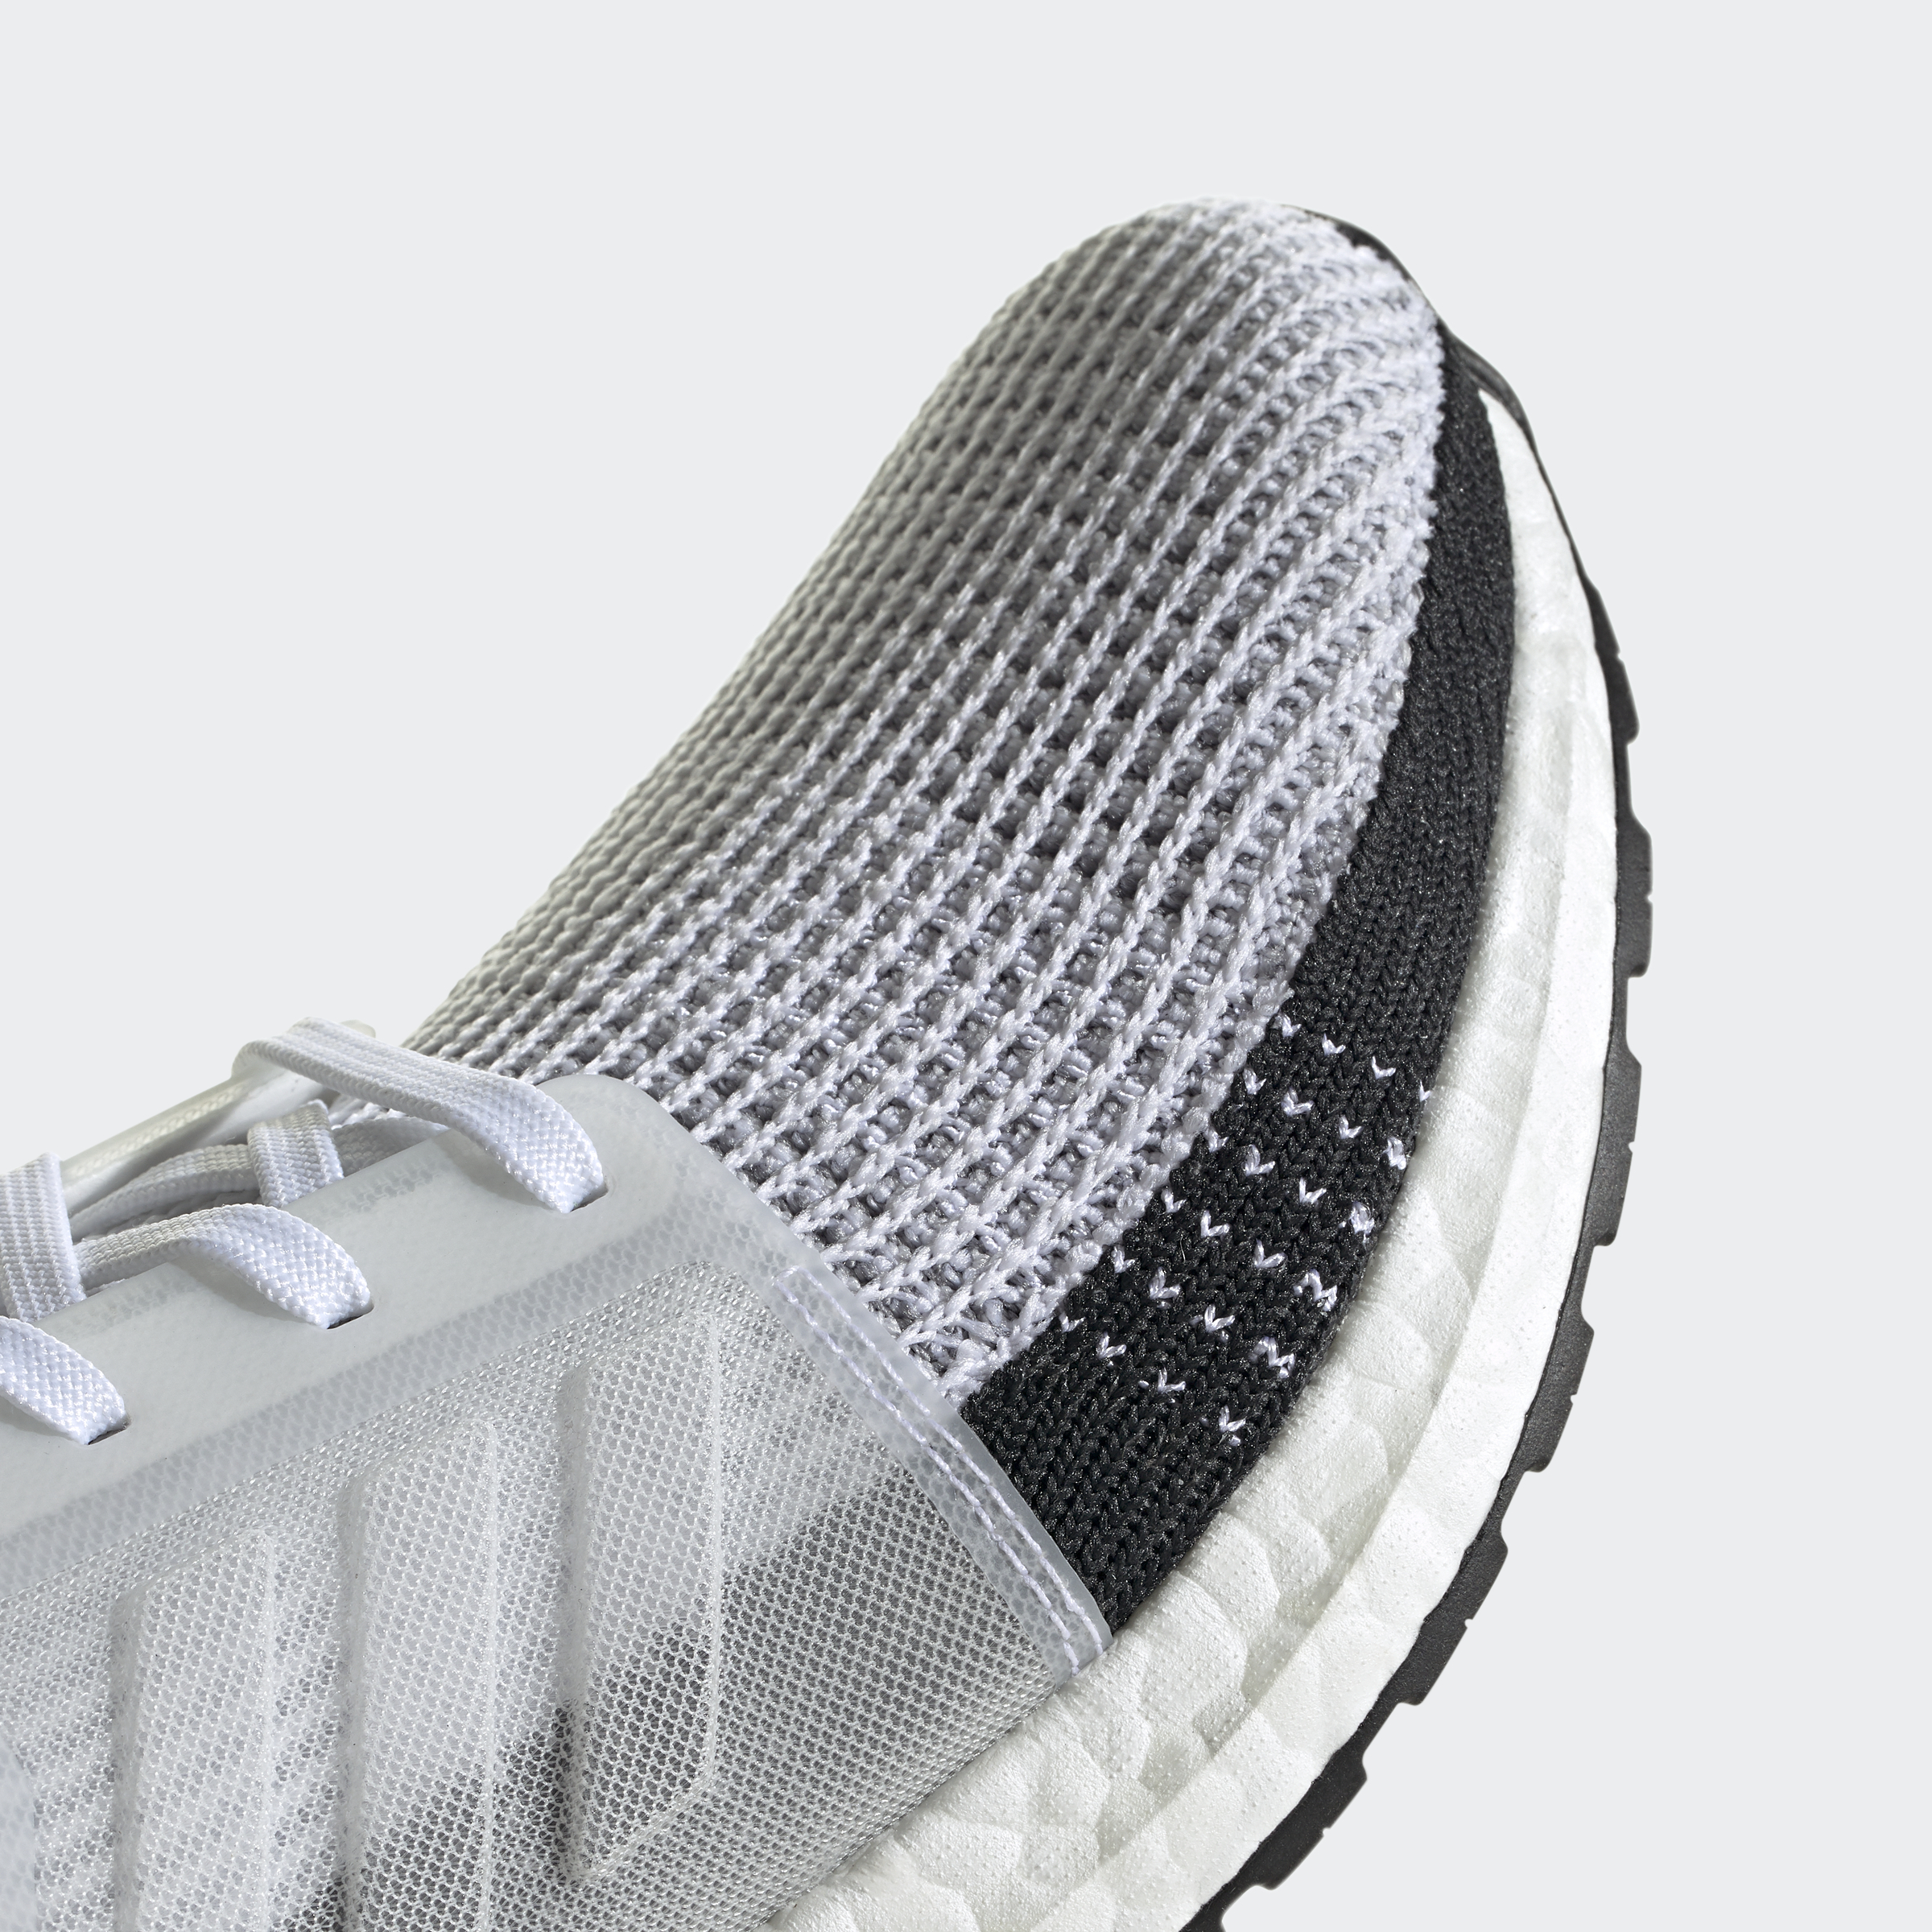 adidas-Ultraboost-19-Shoes-Athletic-amp-Sneakers thumbnail 44